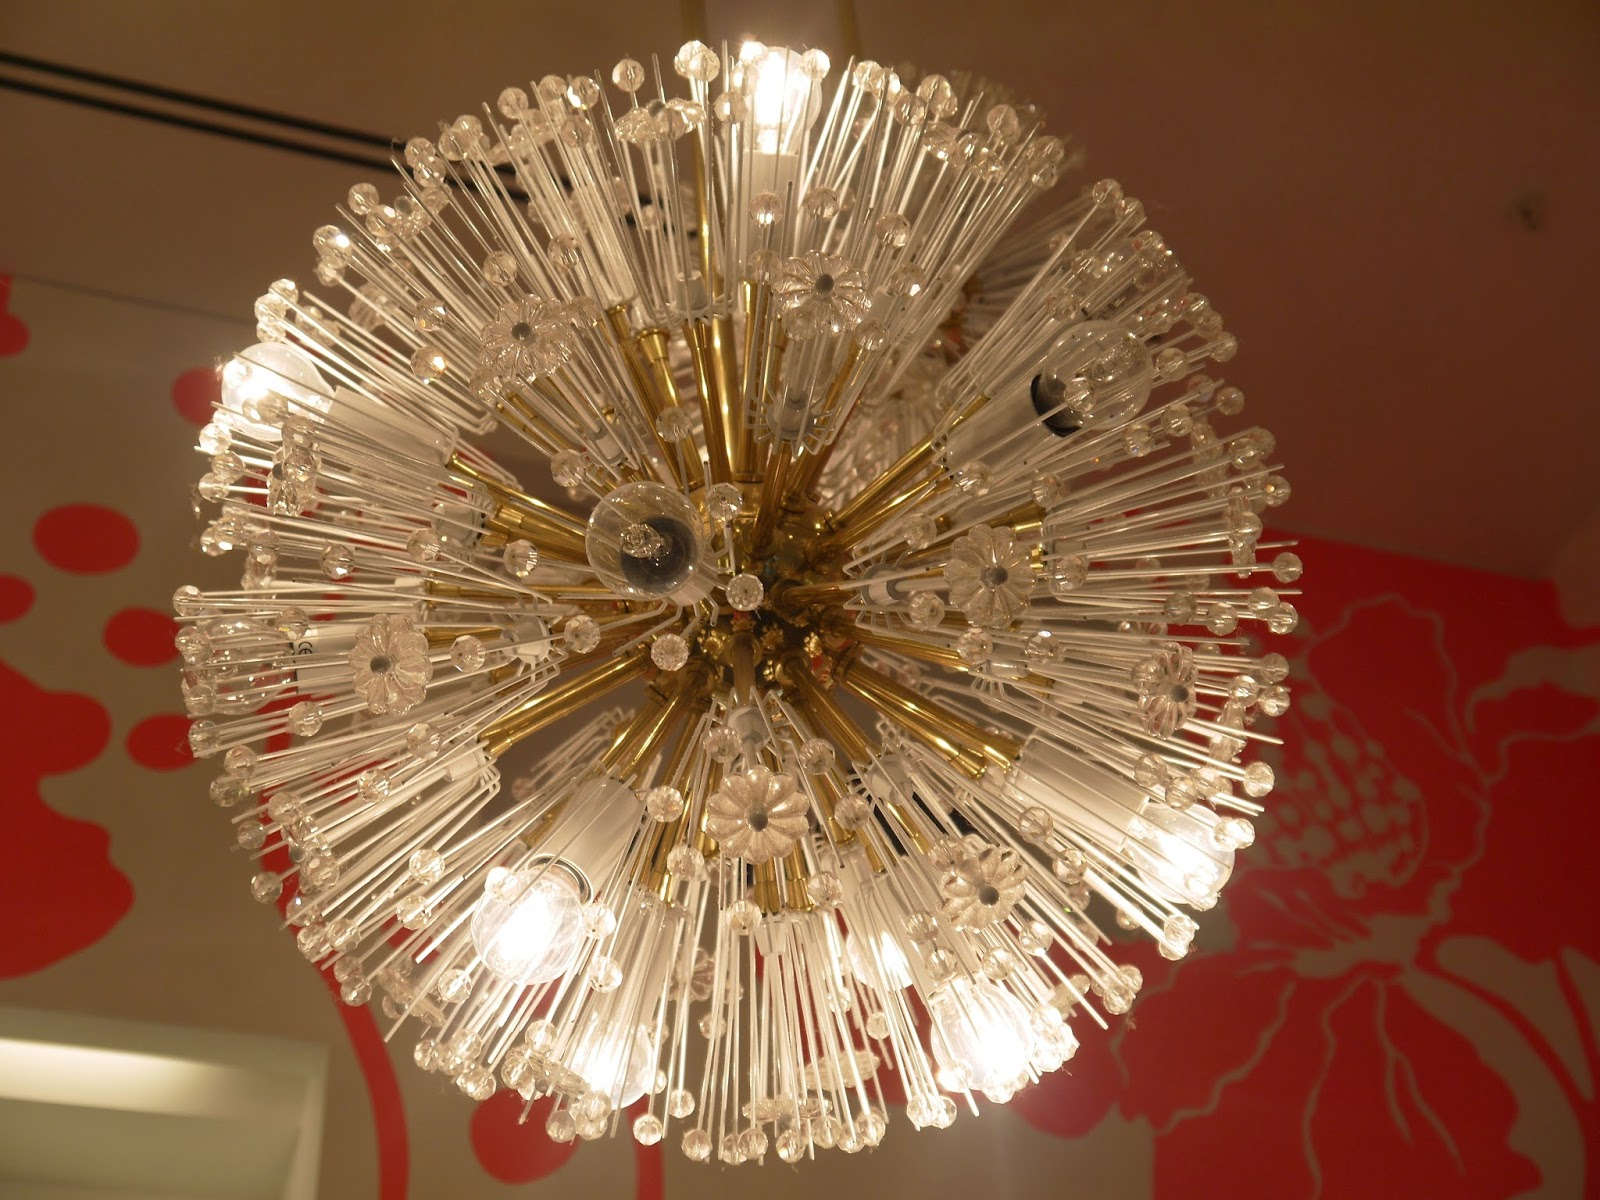 The Beautiful chandelier at Kate Spade Westfield Store